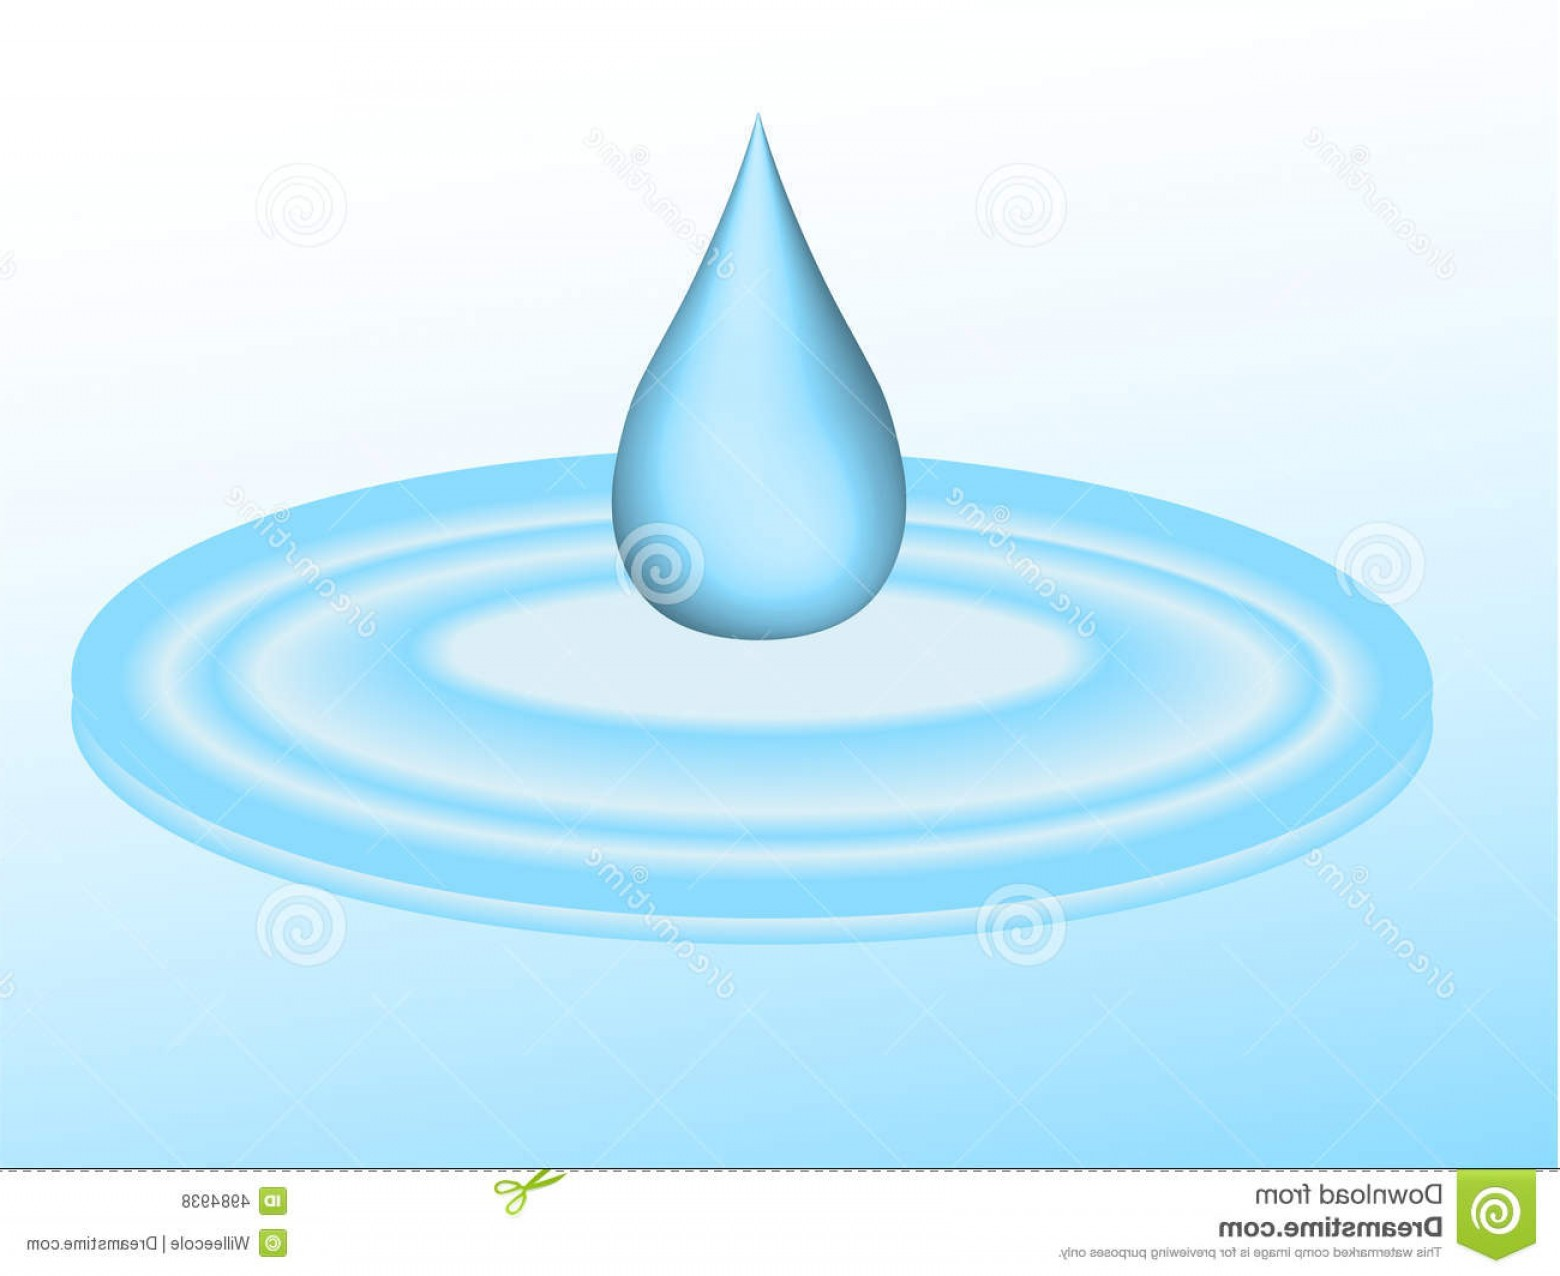 Puddle Of Water Vector: Royalty Free Stock Photos Water Drip Puddle Image